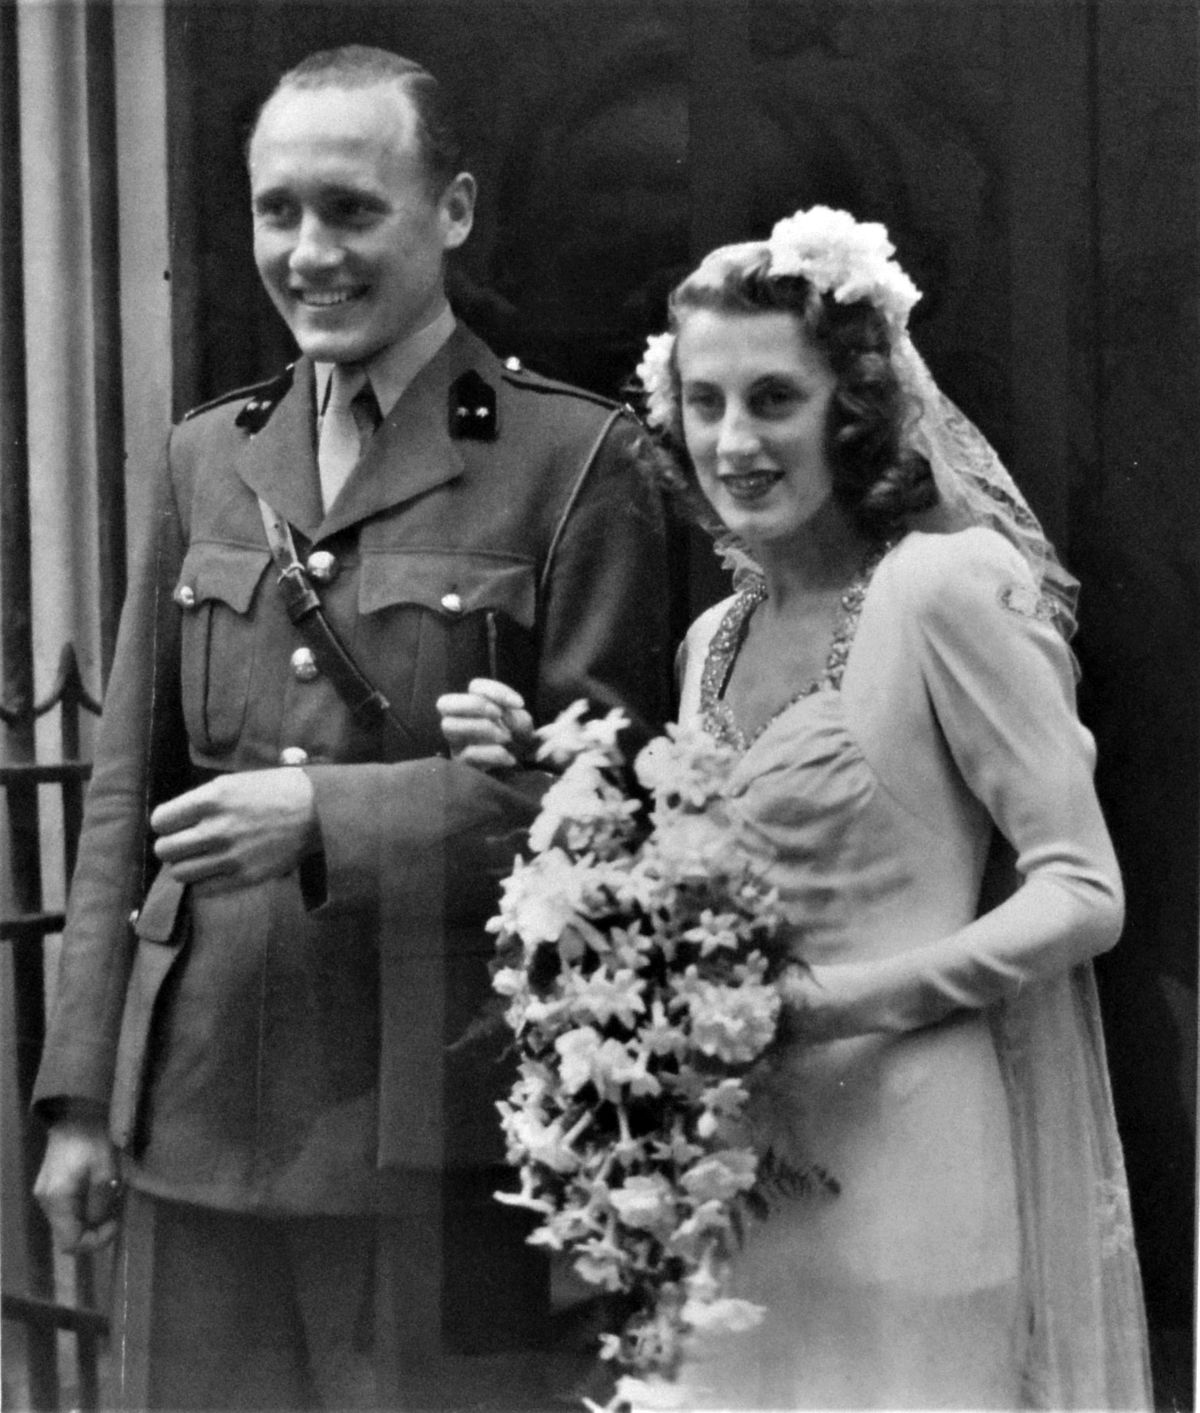 Robbert and Pat's wartime marriage in London, 1943.